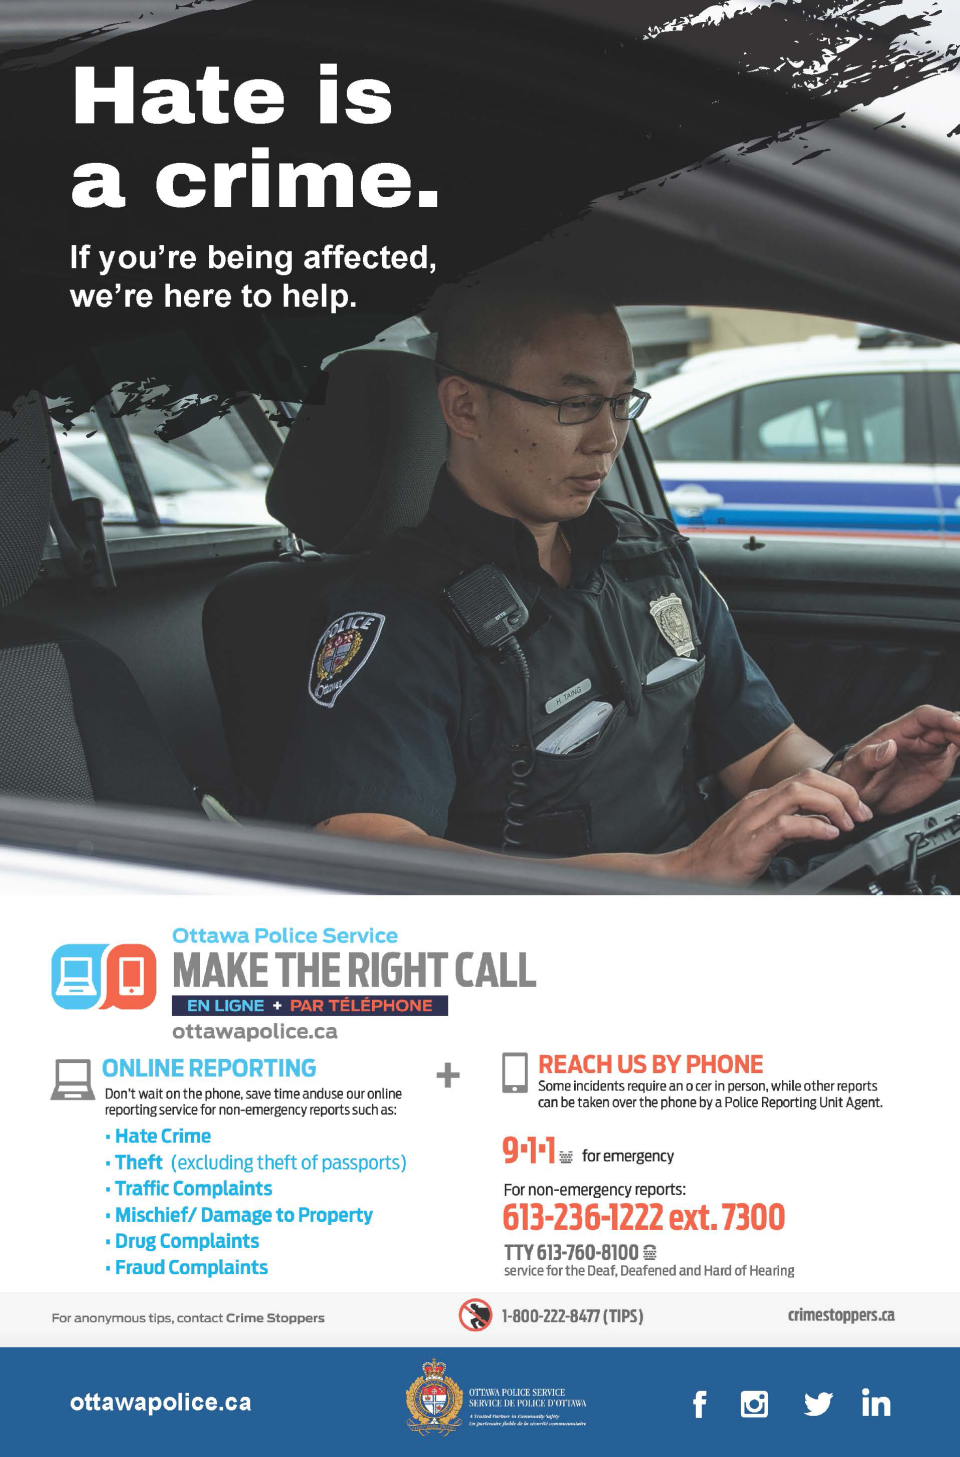 Ottawa Police launched a new campaign encouraging people to report racist incidents.